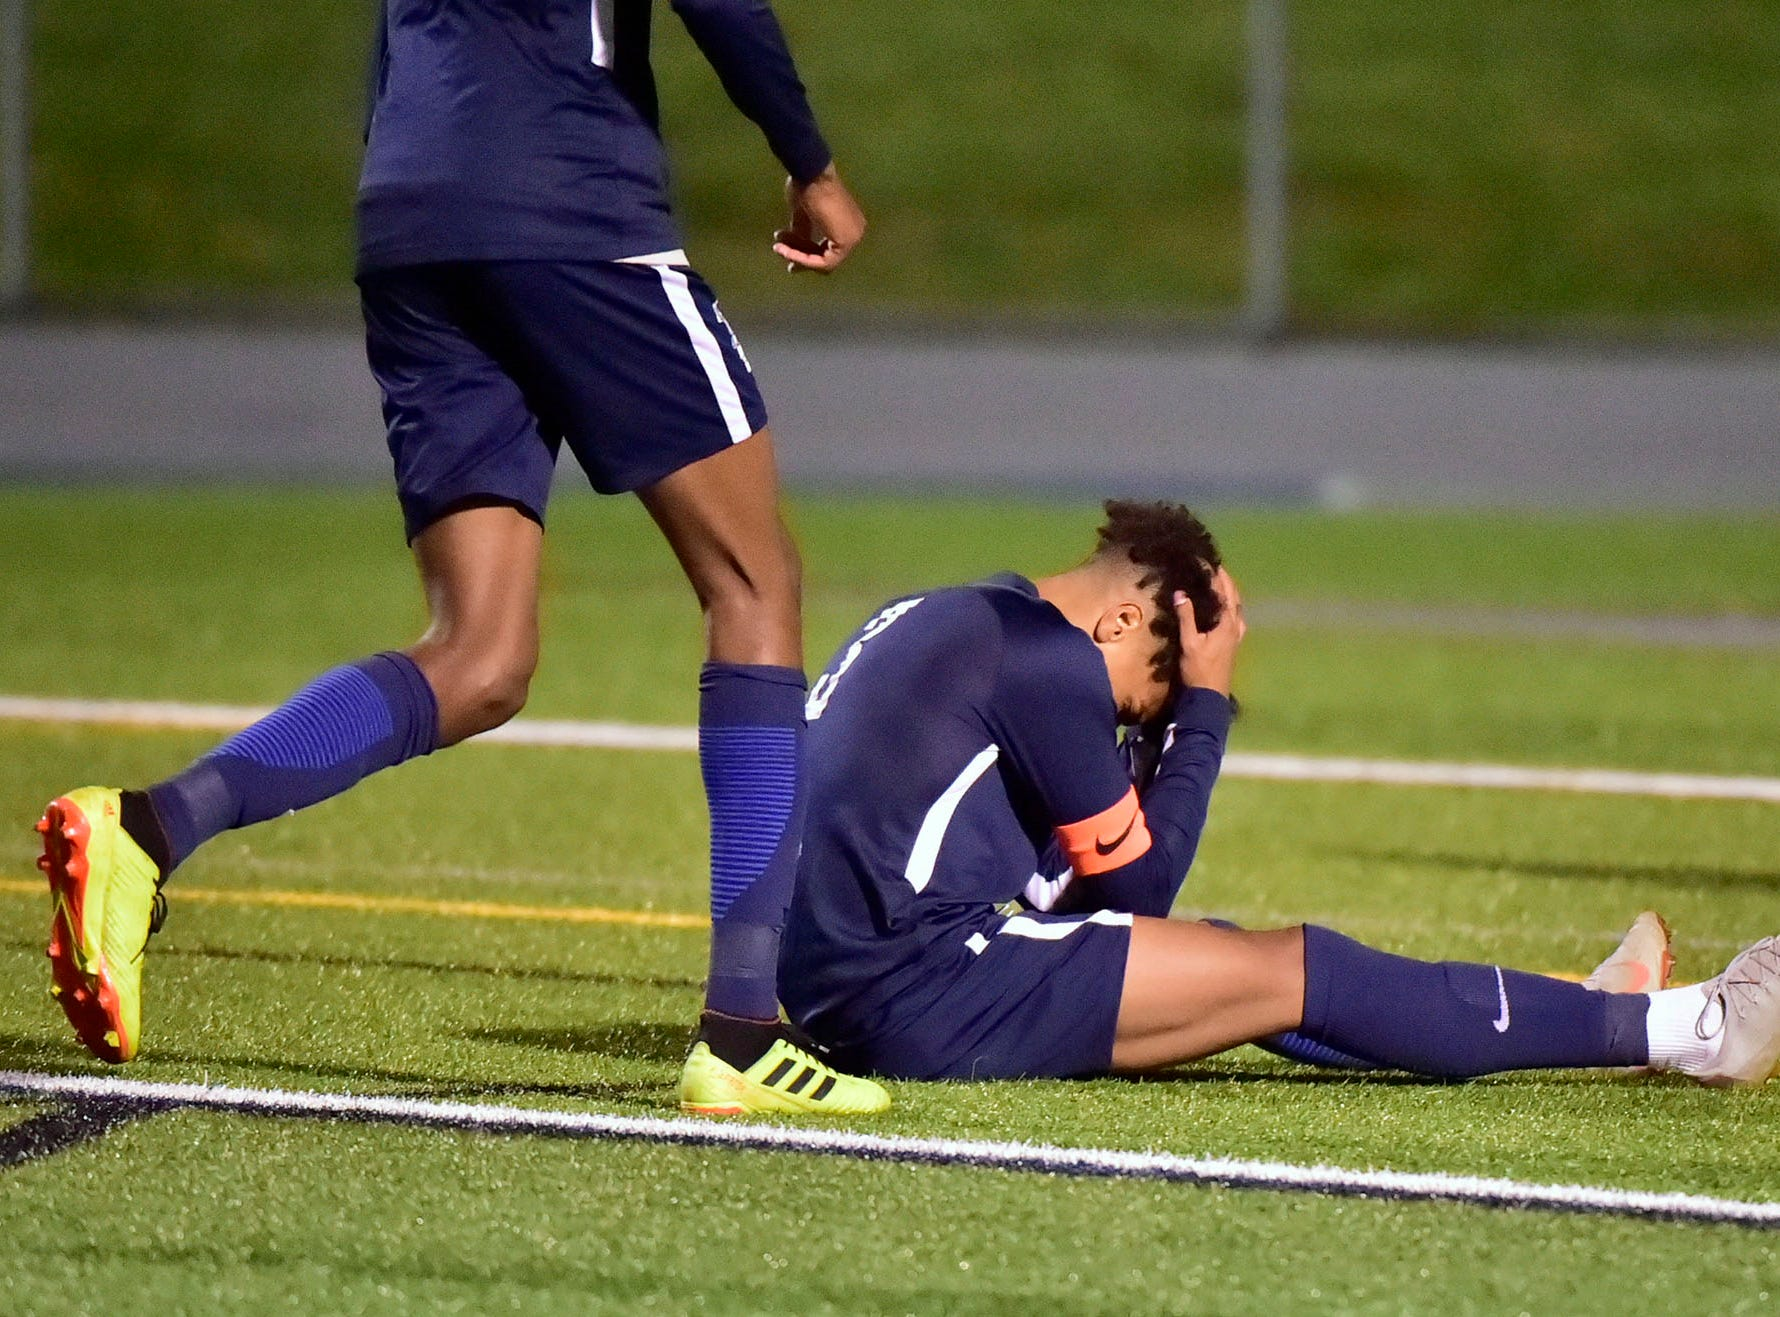 Chambersburg's Ebe Hewitt reacts to a missed opportunity at the gaol. Chambersburg lost a first round D3 soccer match to Dallastown 2-1 on Tuesday, Oct. 23, 2018.